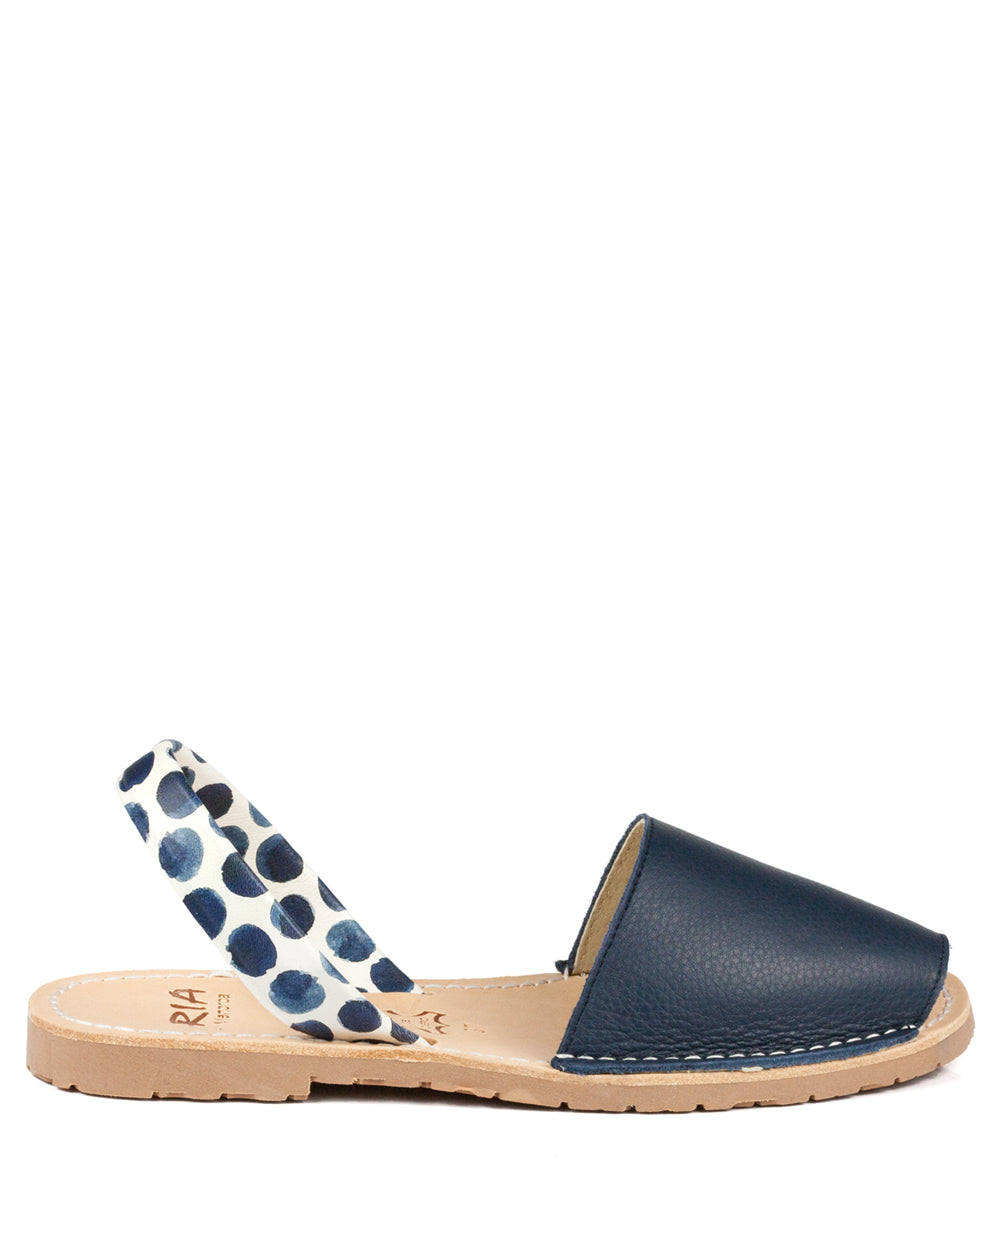 Menorcan Sandals Mediteranean Swirl Leather - The Espadrille Hut